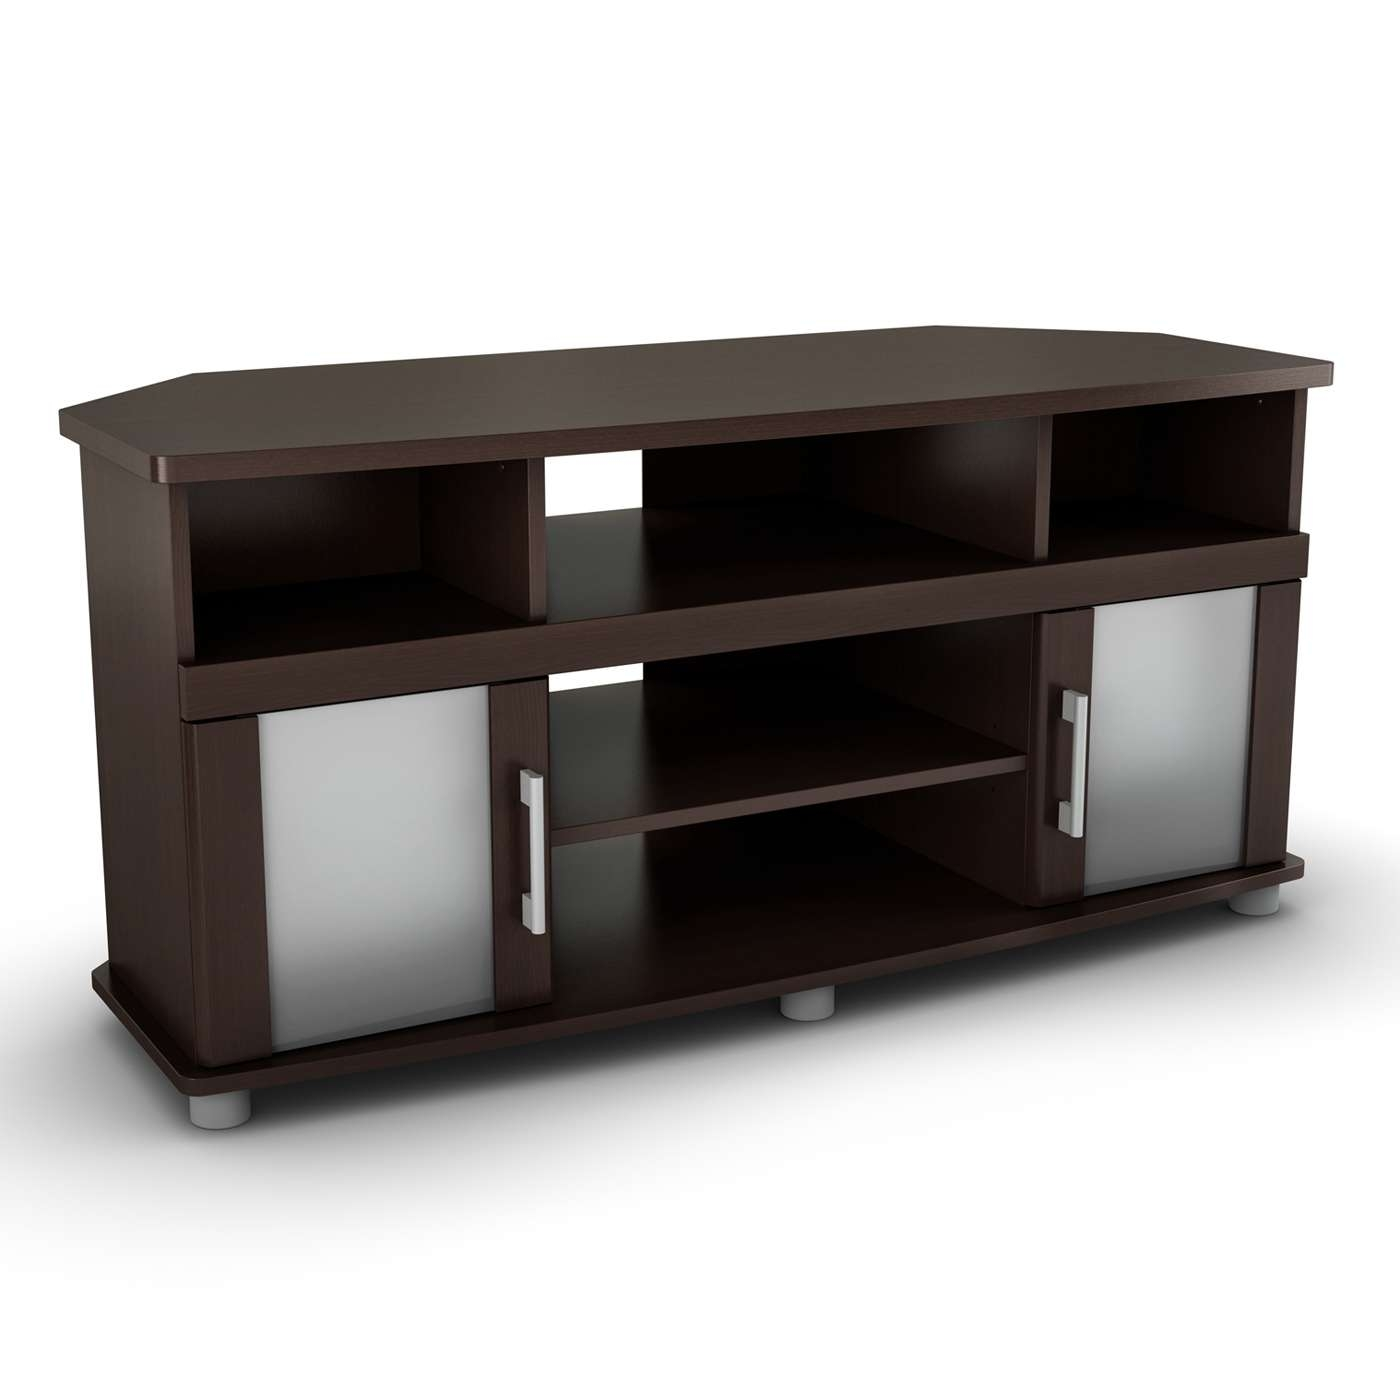 Tv Stands – Corner, Fireplace & More | Lowe's Canada Inside Tv Stands With Rounded Corners (View 13 of 15)